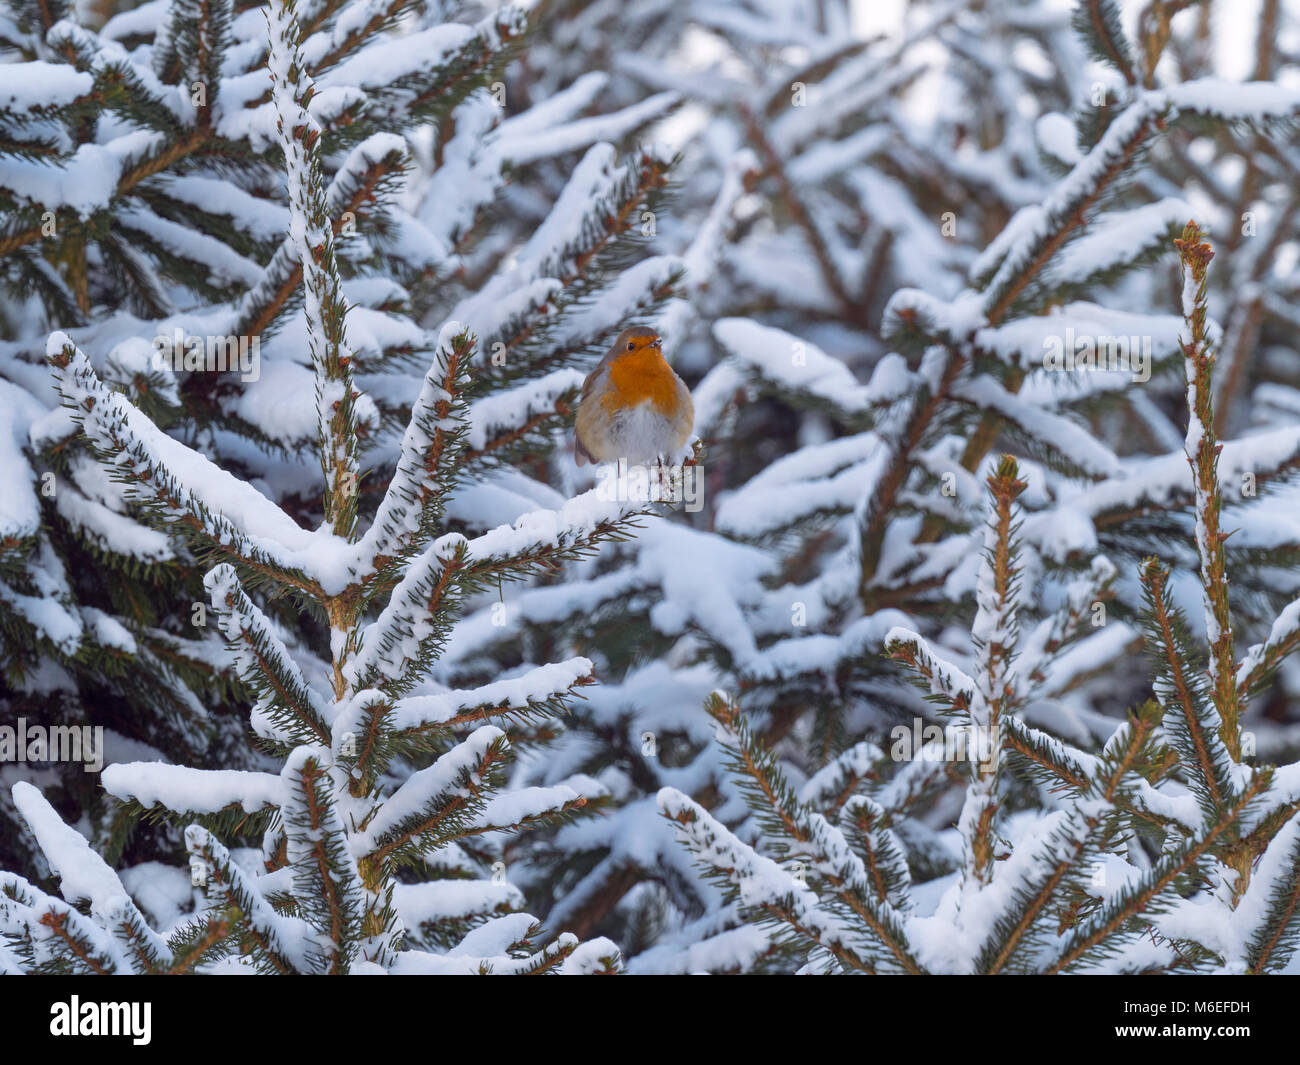 Robin Erithacus Rubecula in snow - Stock Image